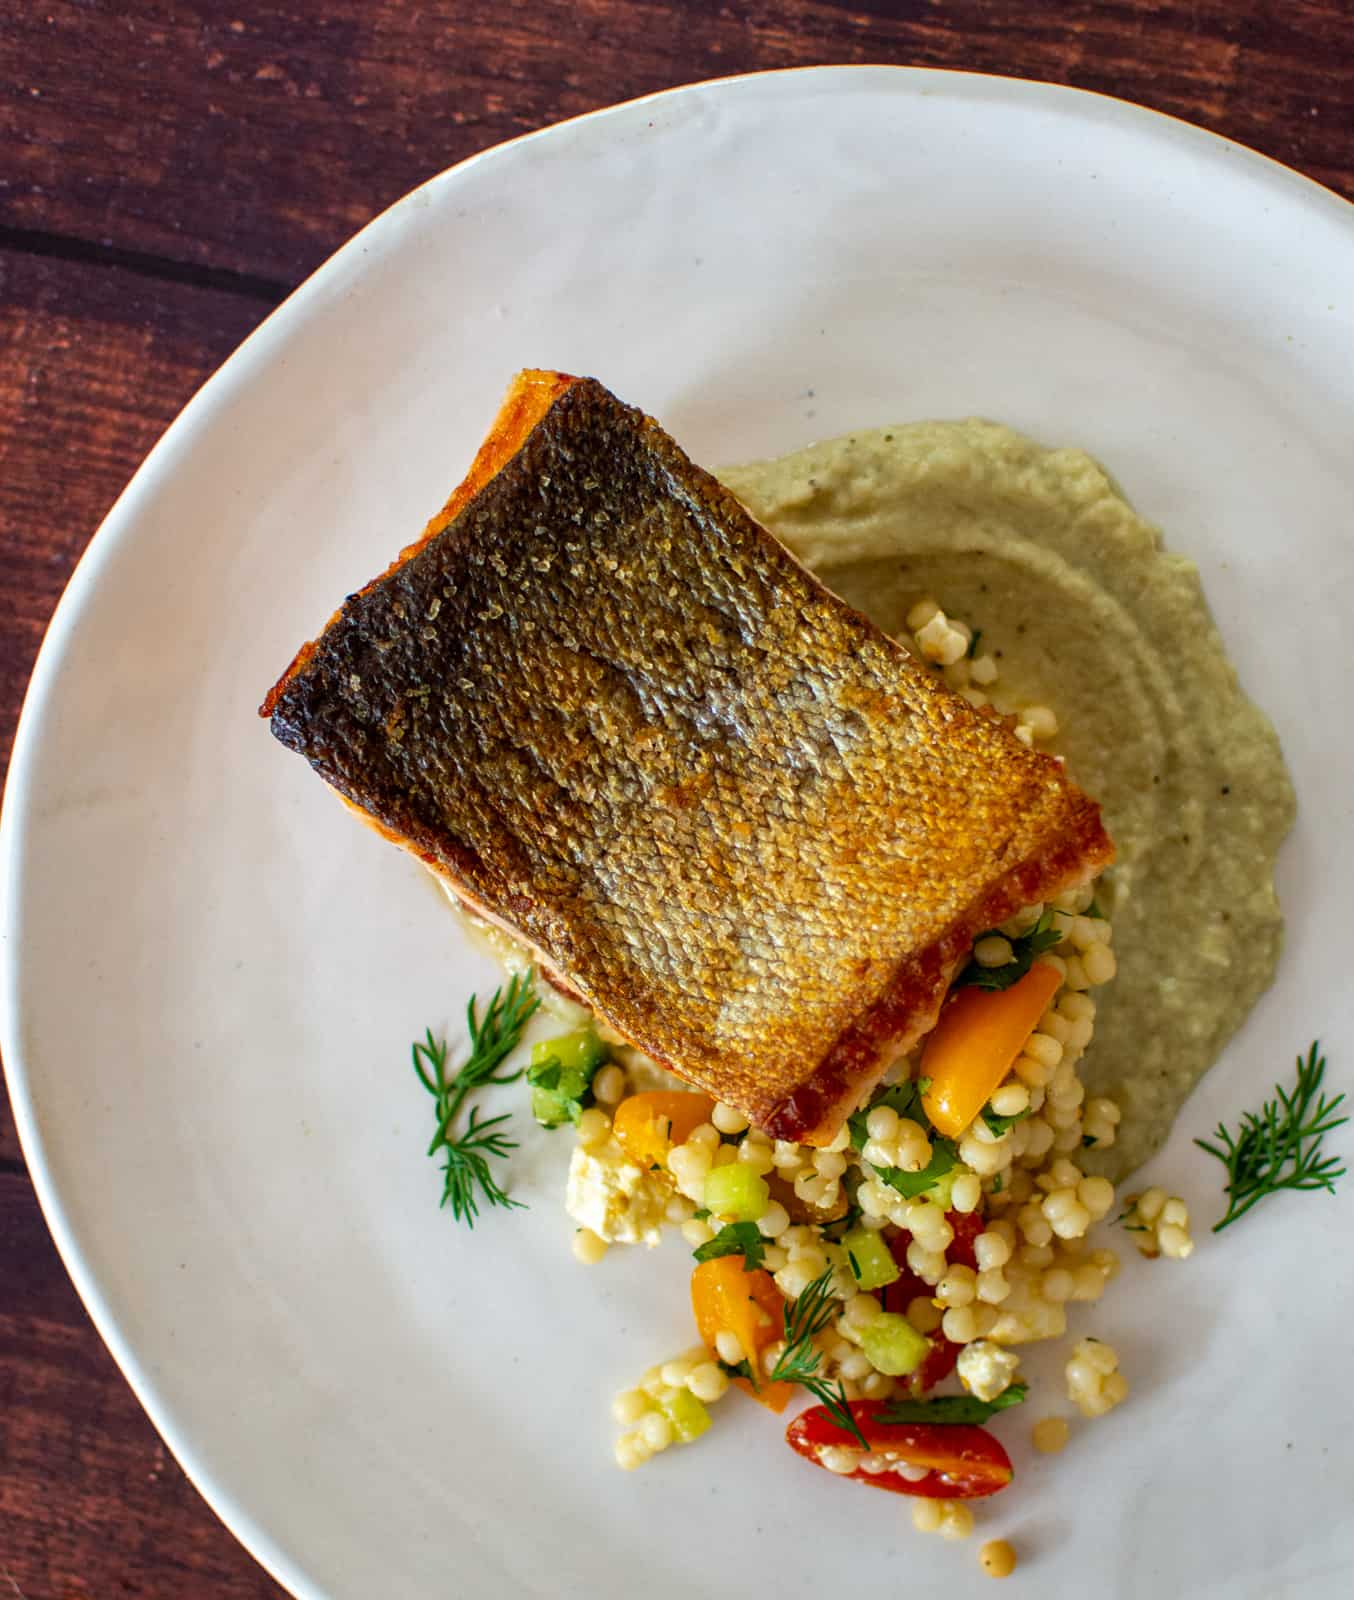 morccan salmon on a white plate